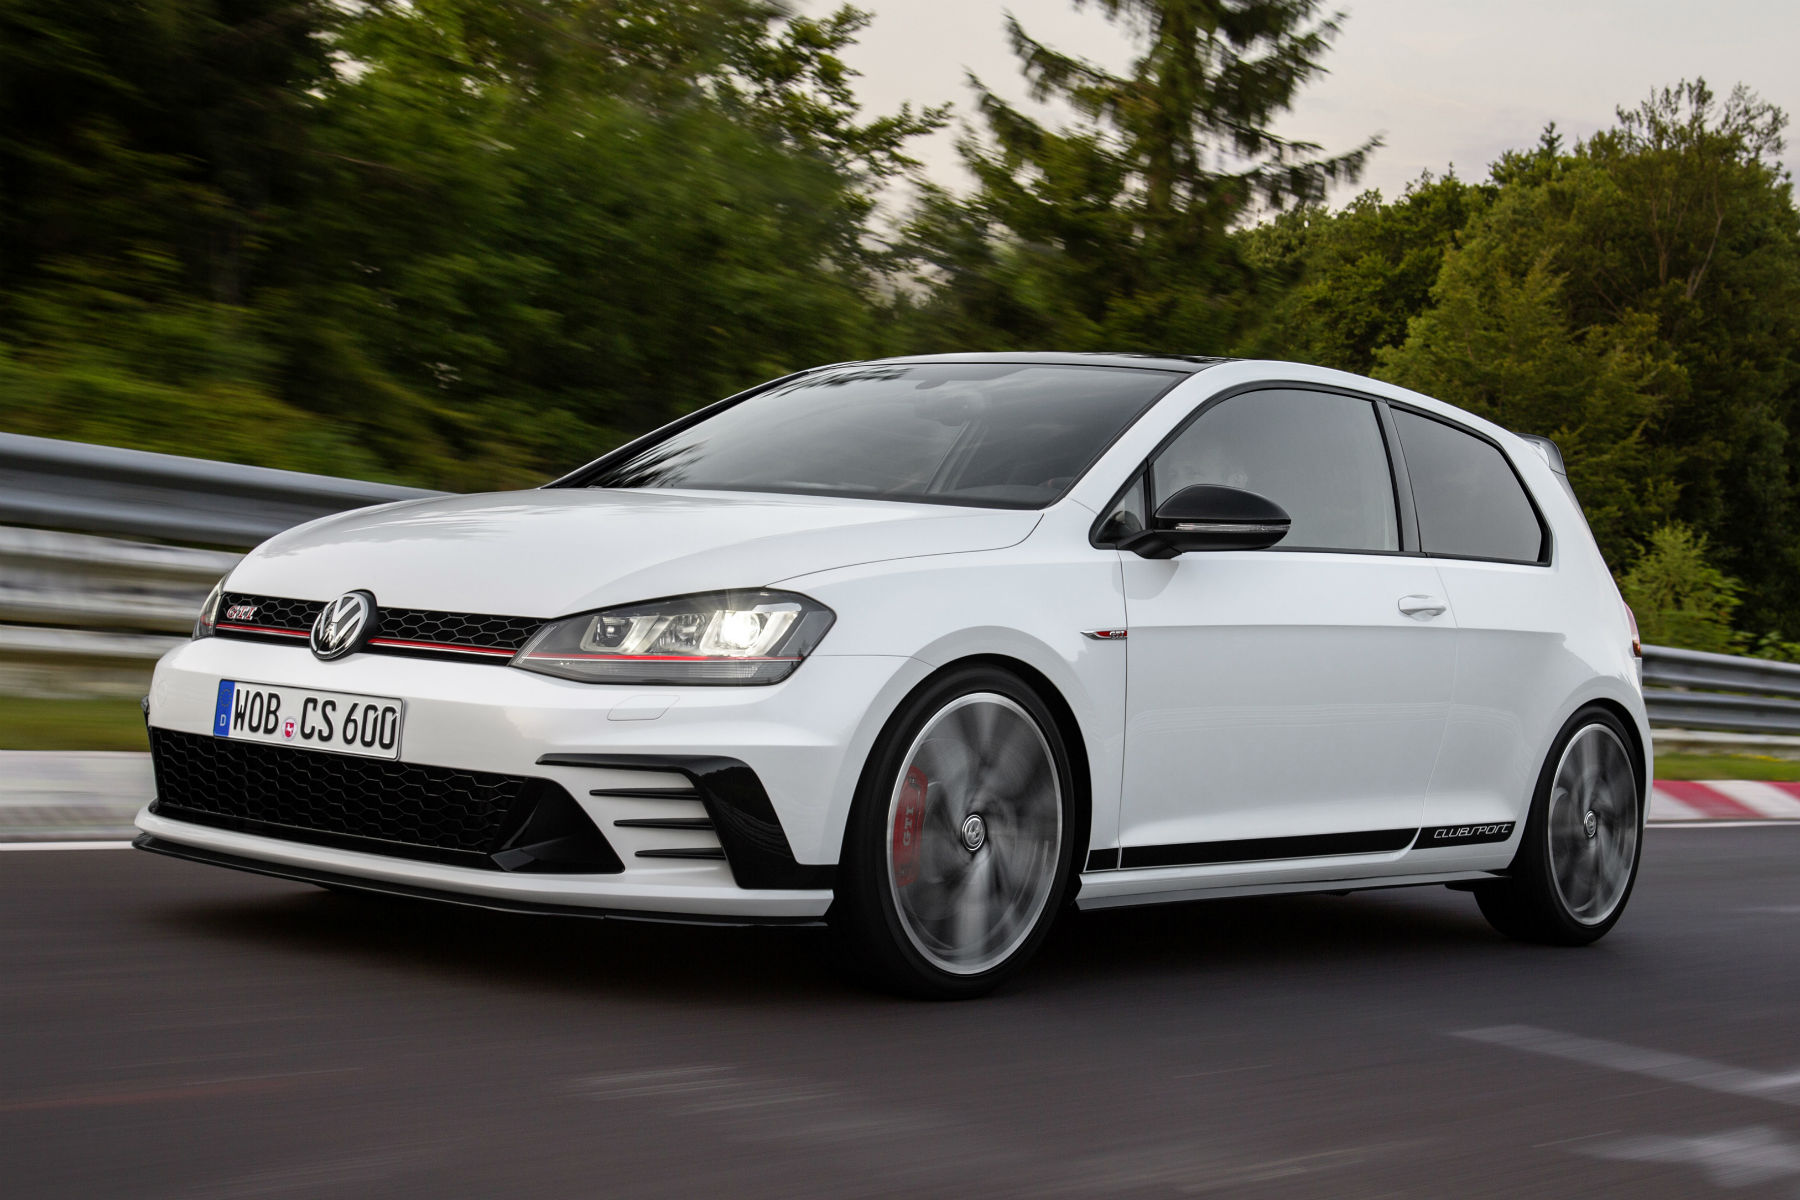 Hot VW Golf GTI Clubsport to start at £30,875